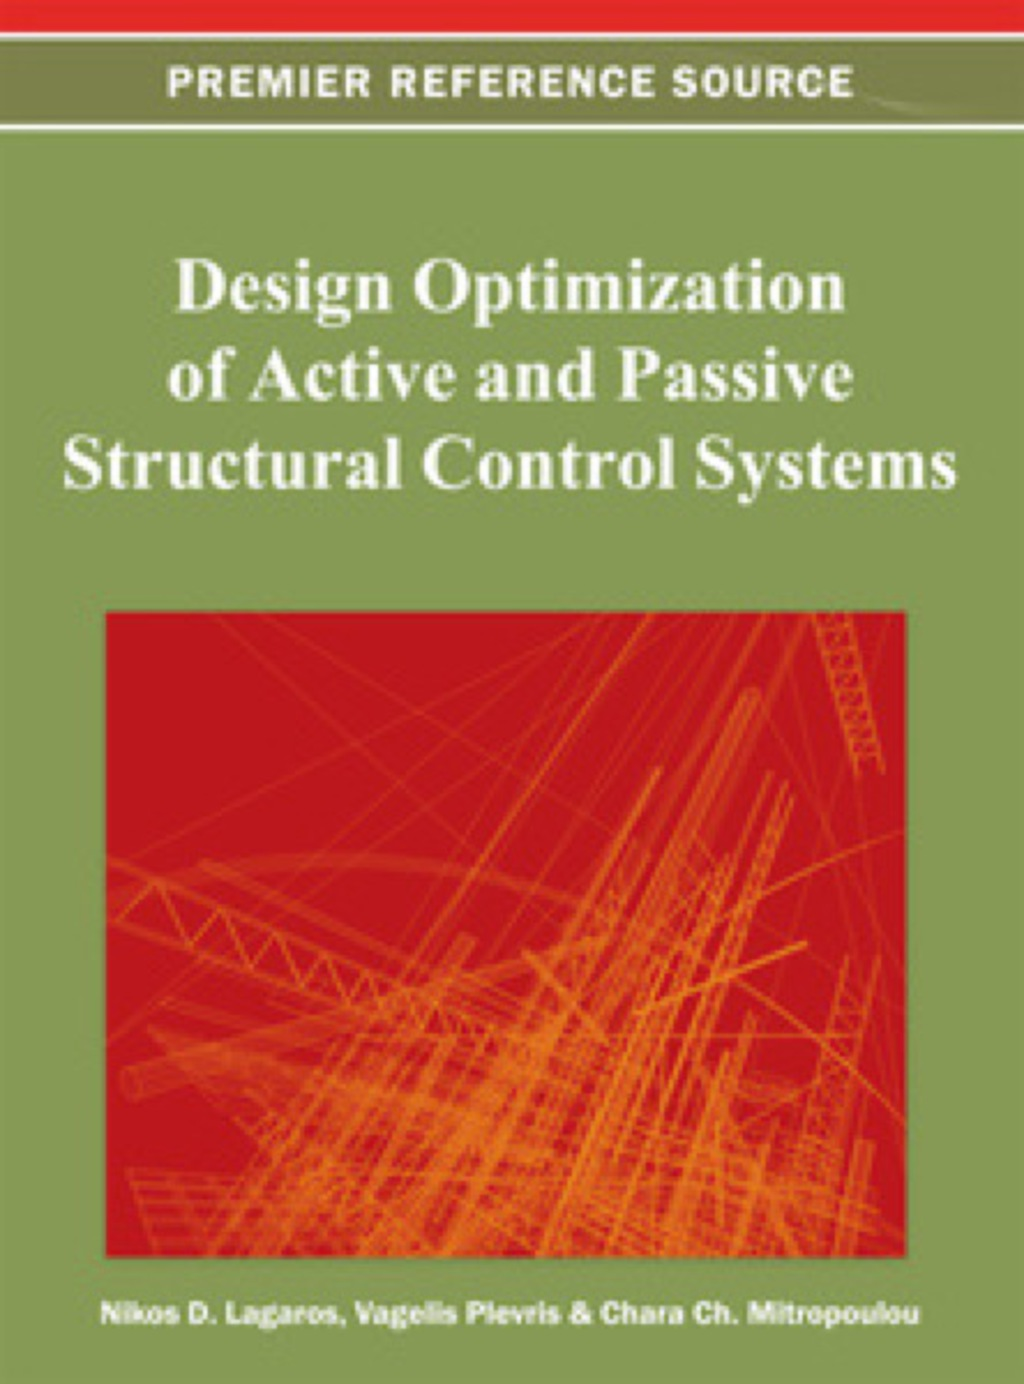 Design Optimization of Active and Passive Structural Control Systems (ebook) eBooks